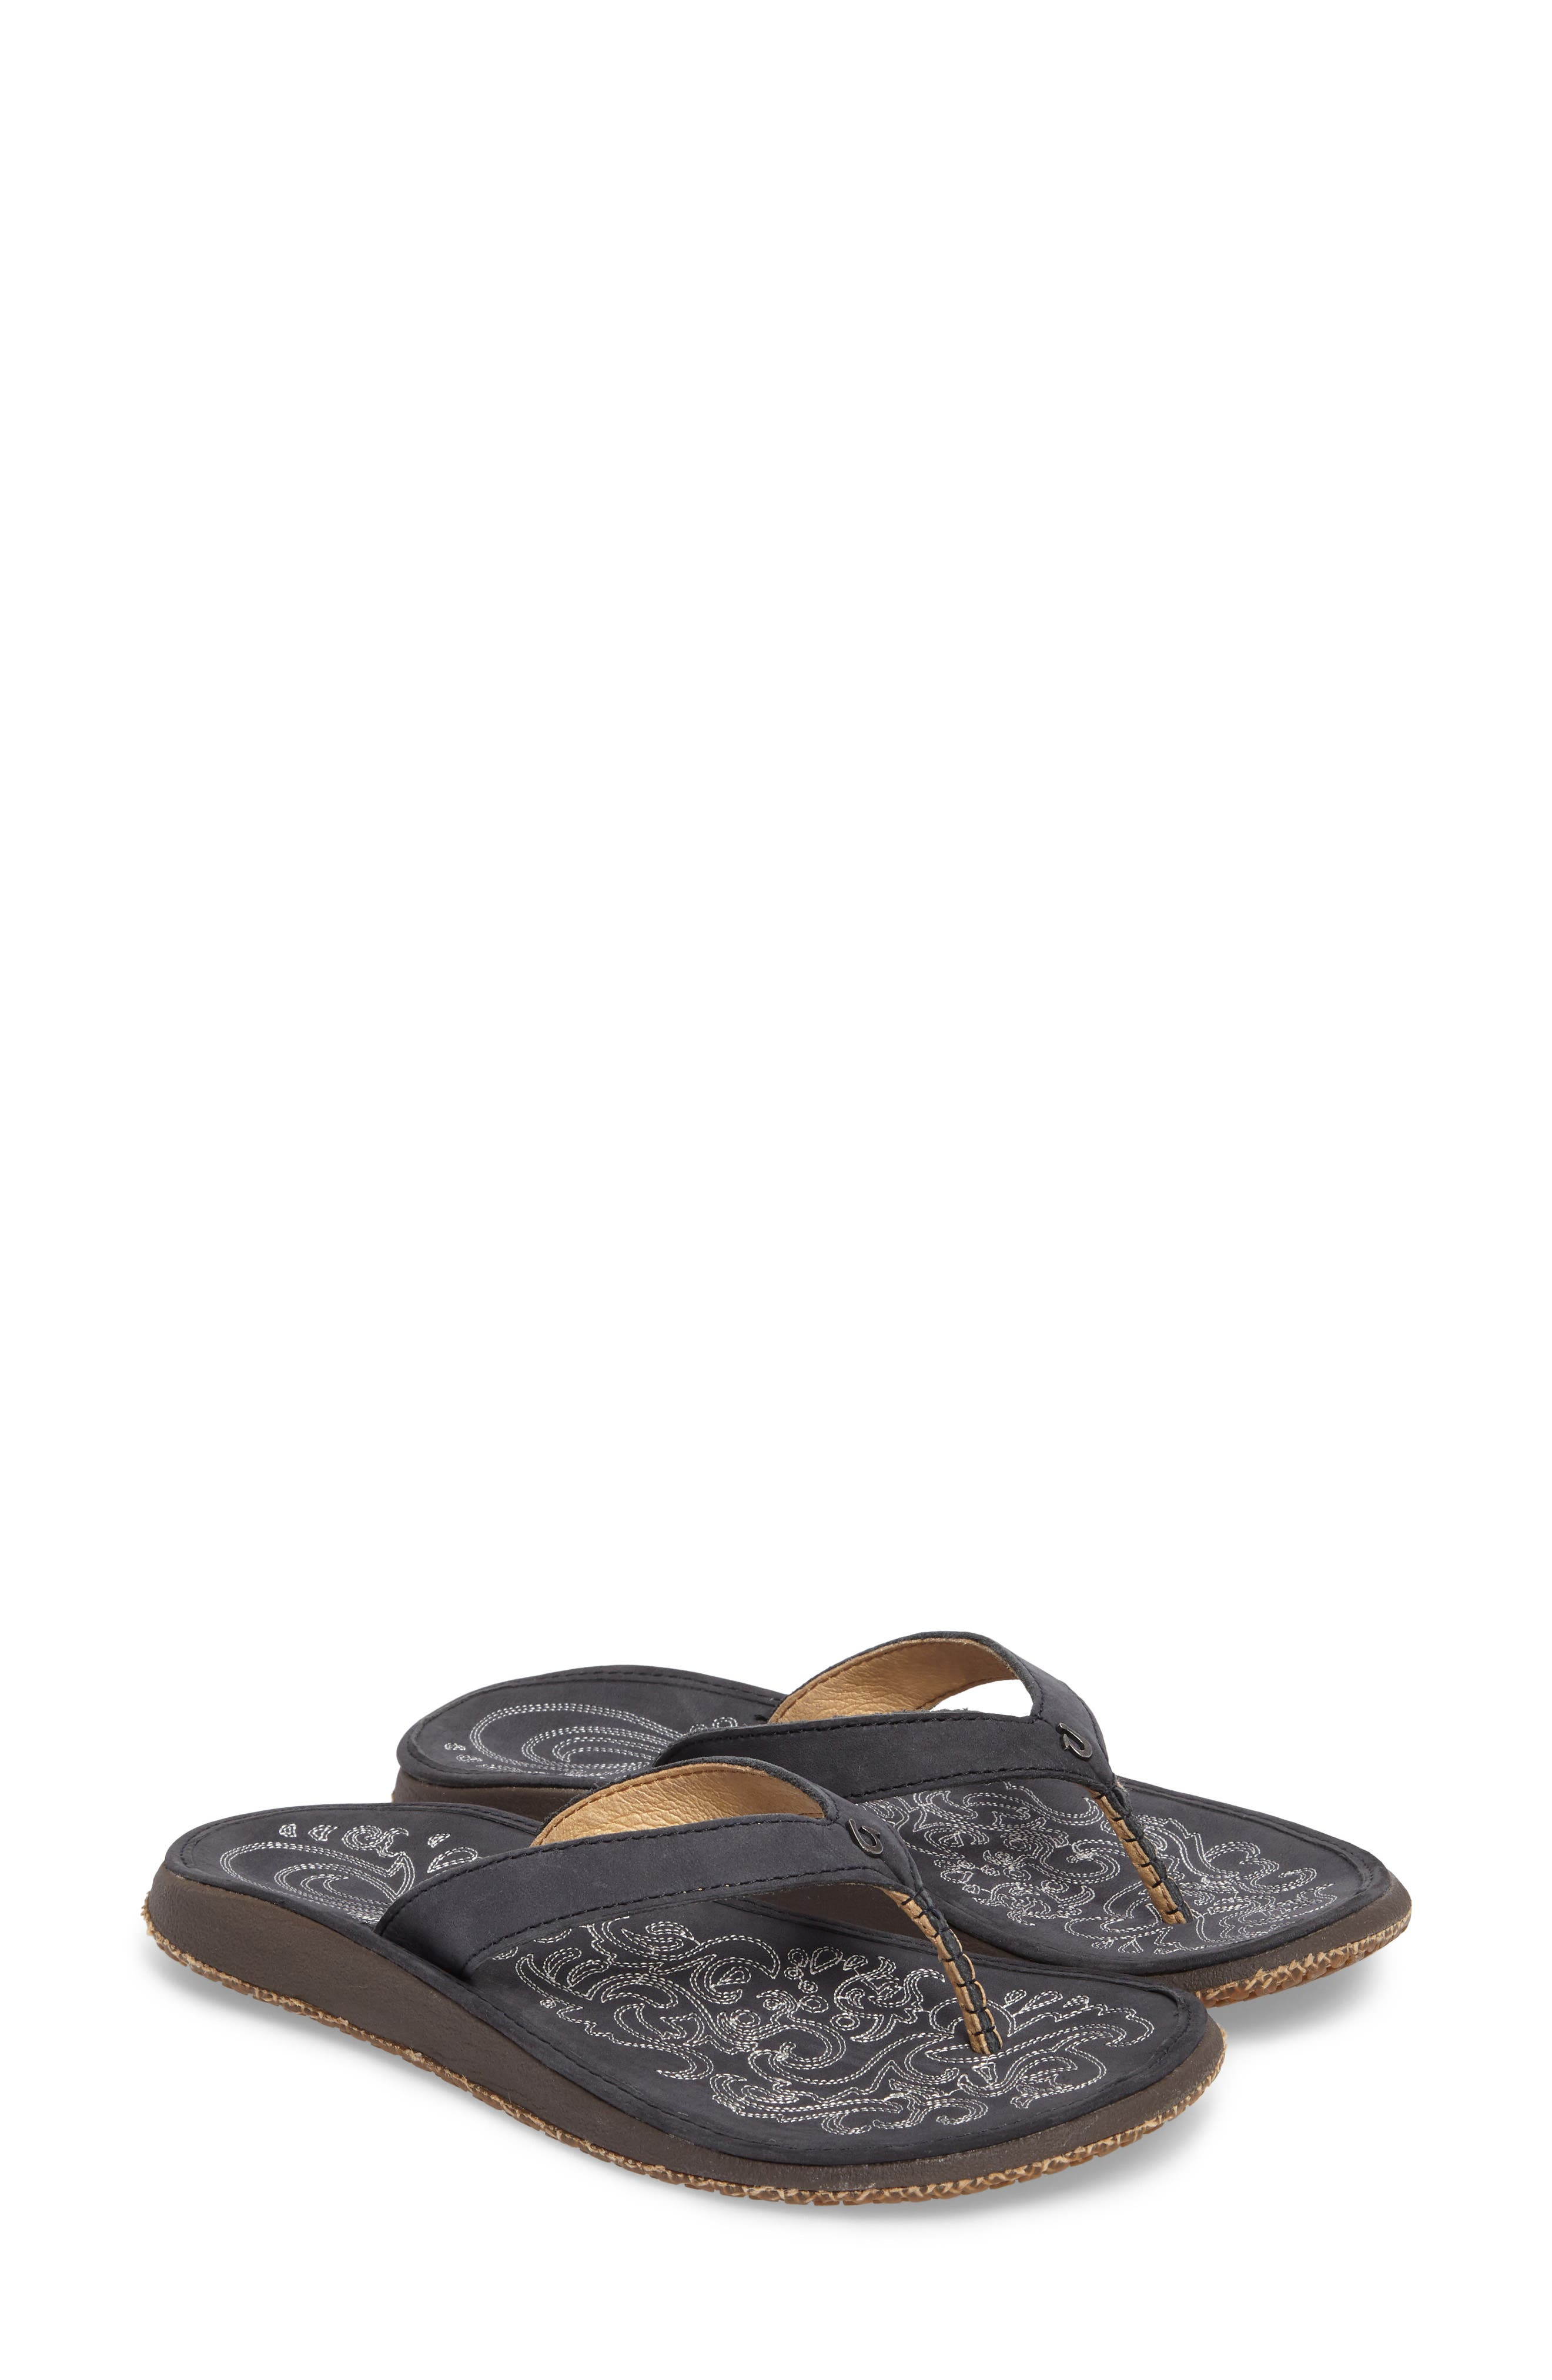 'Paniolo' Thong Sandal,                         Main,                         color, Trench Blue/ Blue Leather